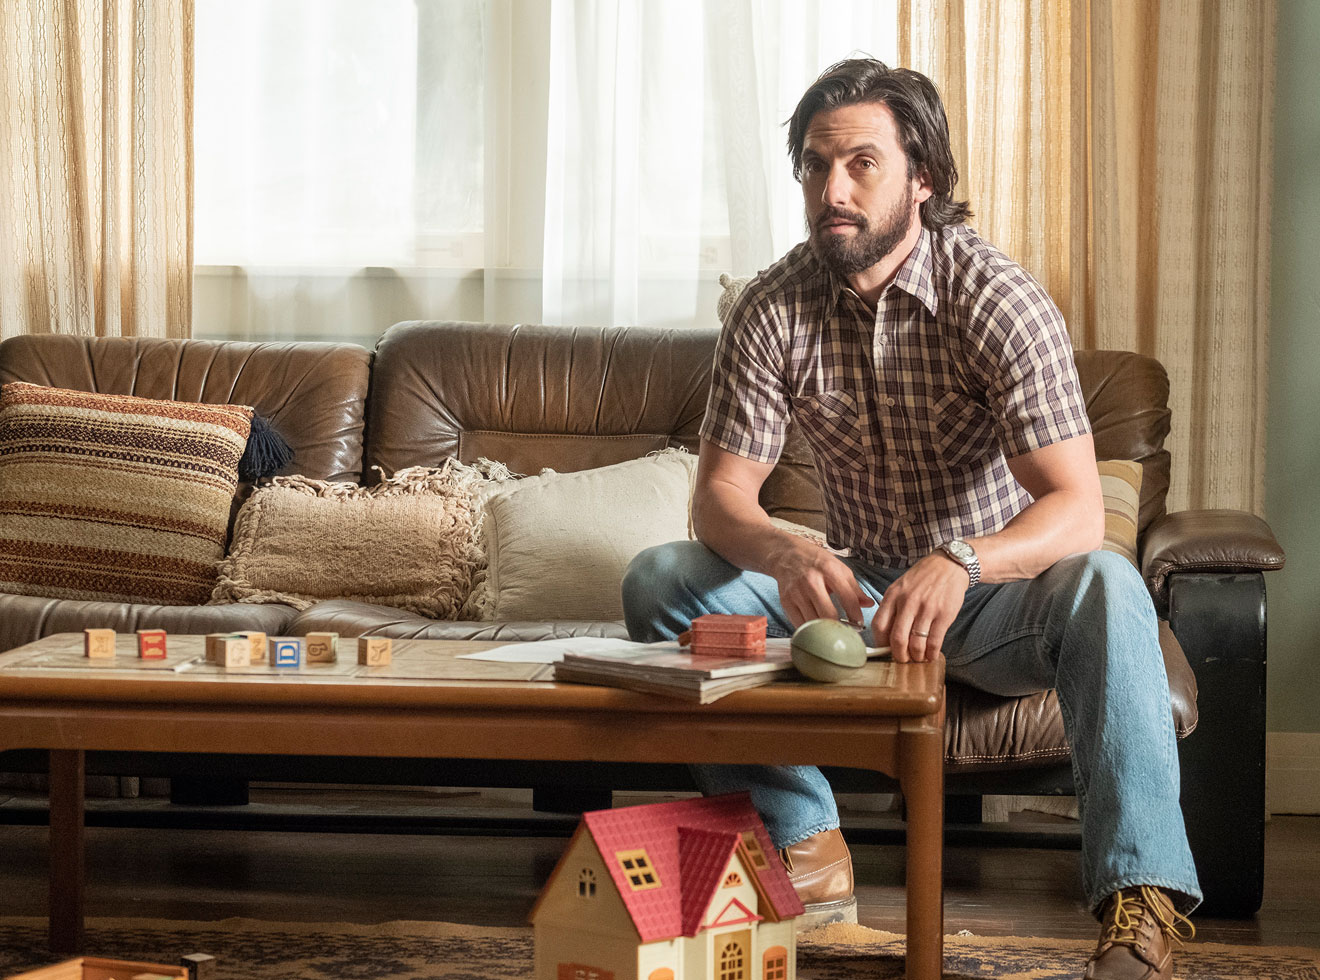 Milo Ventimiglia in This Is Us - Season 3